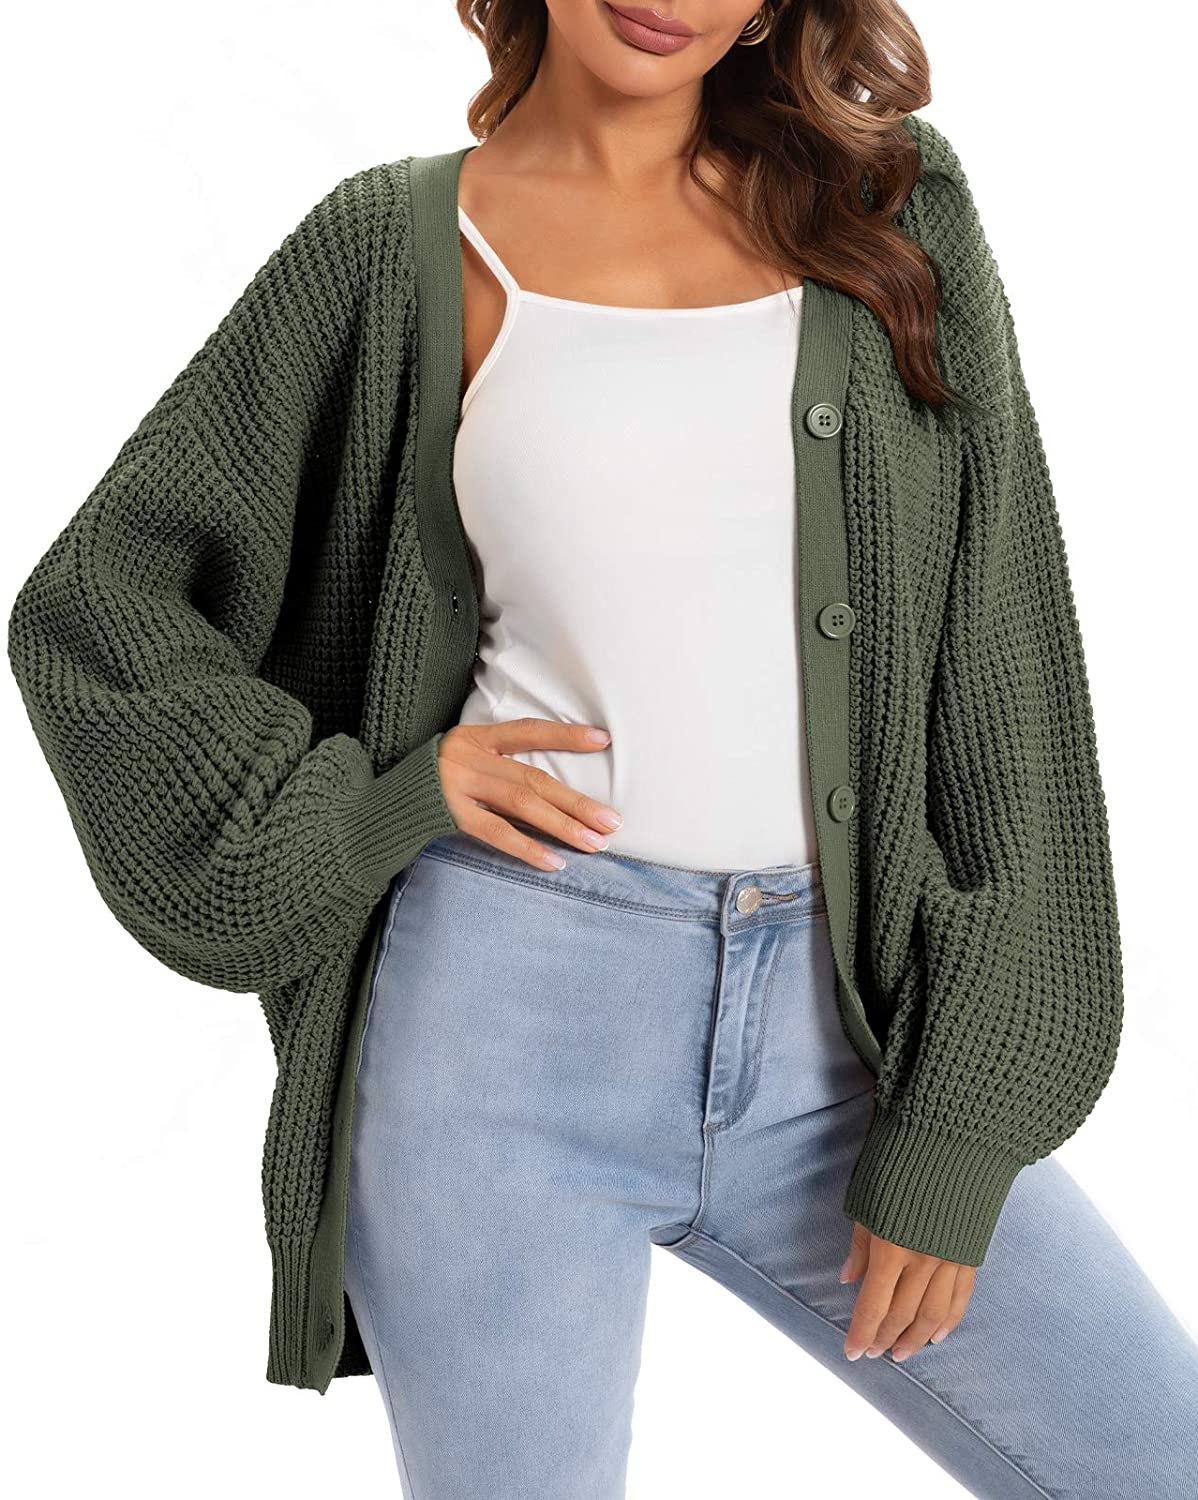 QUALFORT Women's Cardigan Sweater 100% Cotton Button-Down Long Sleeve Oversized Knit Cardigans